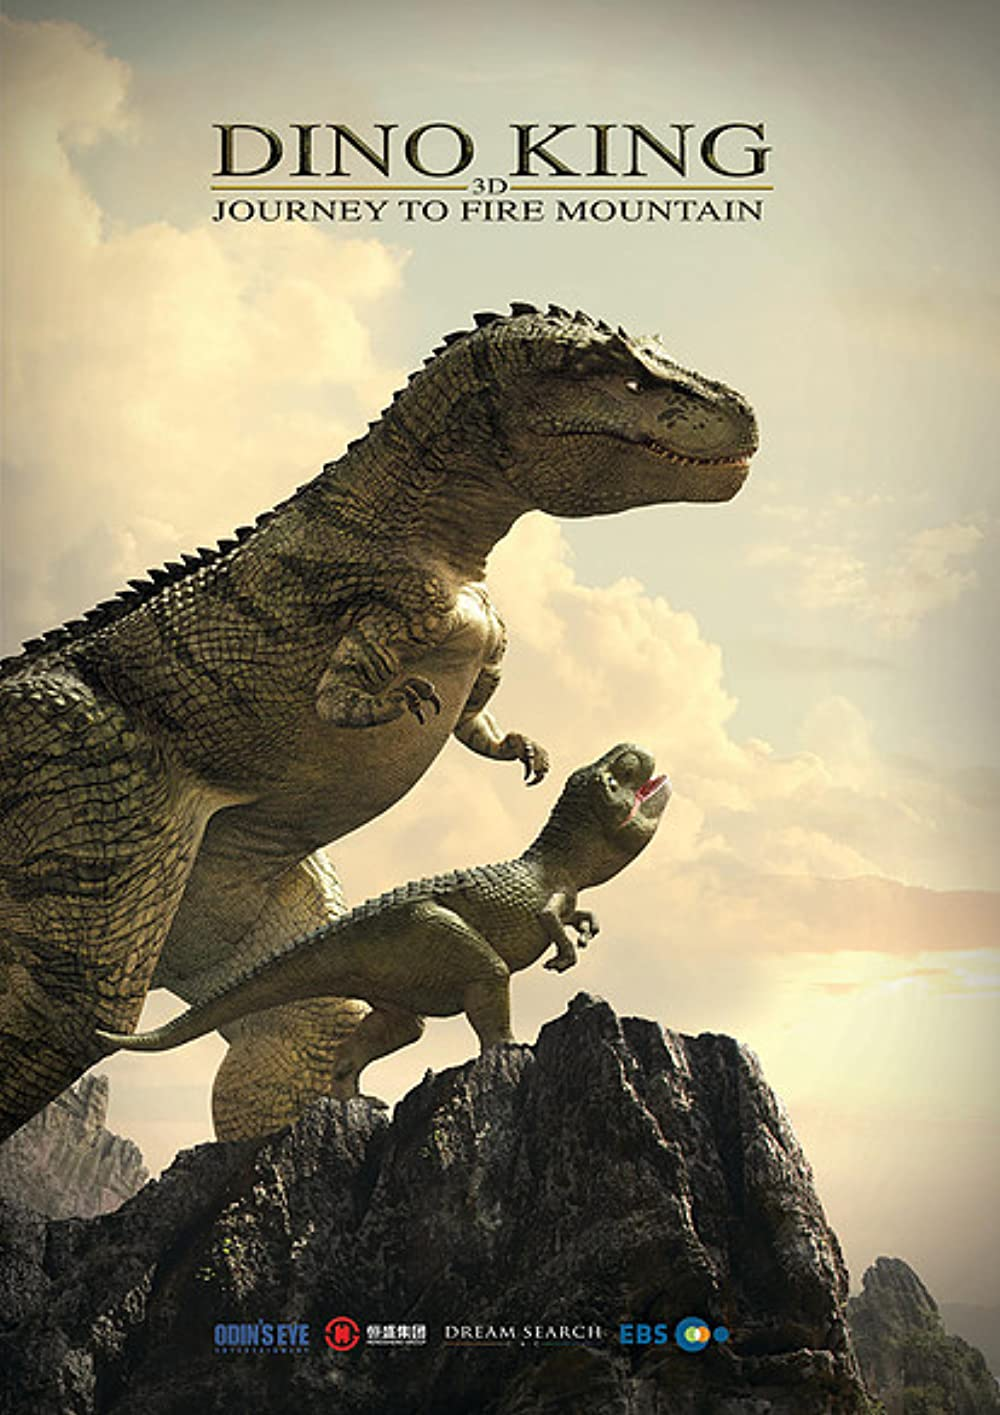 Dino King 3D: Journey to Fire Mountain 2019 Hindi Dubbed 480p AMZN HDRip ESubs 300MB Download